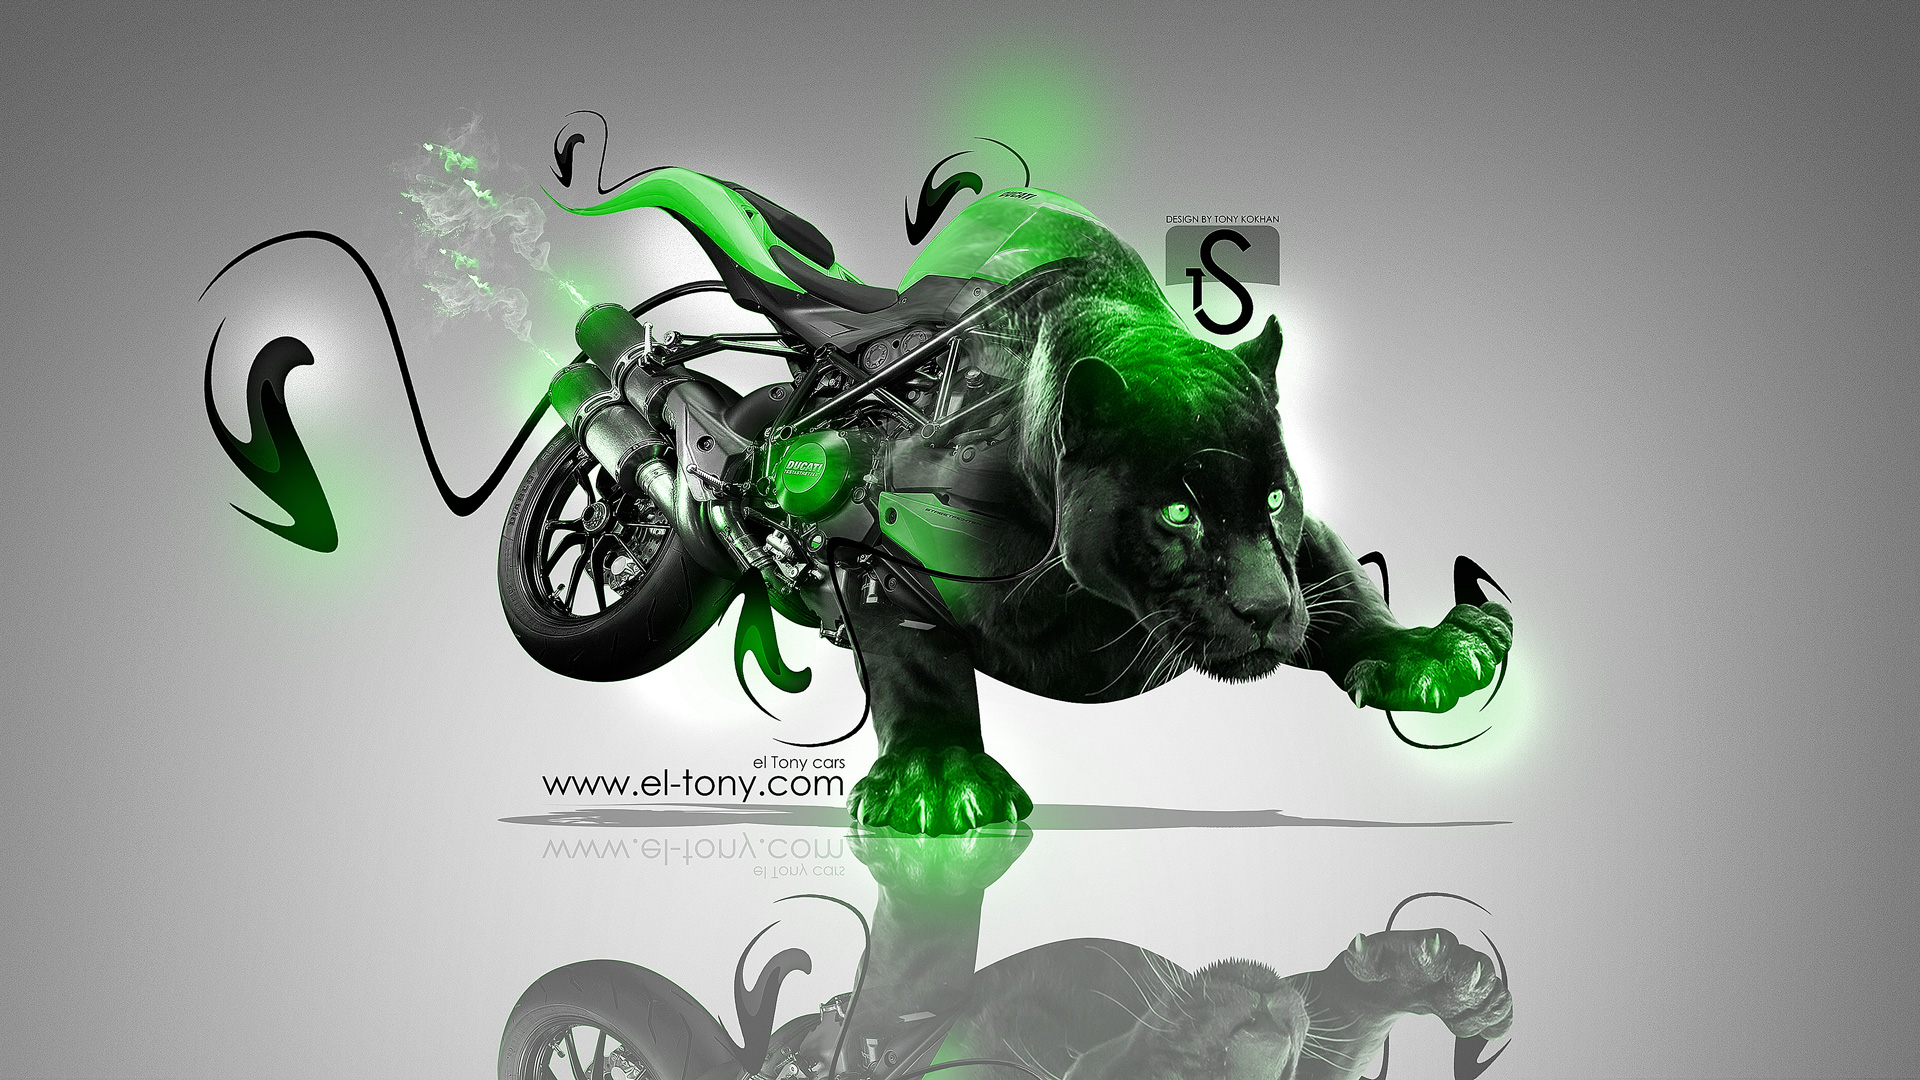 Back Download Ducati Streetfighter 848 Picture # 14, Size 1920x1080 Next